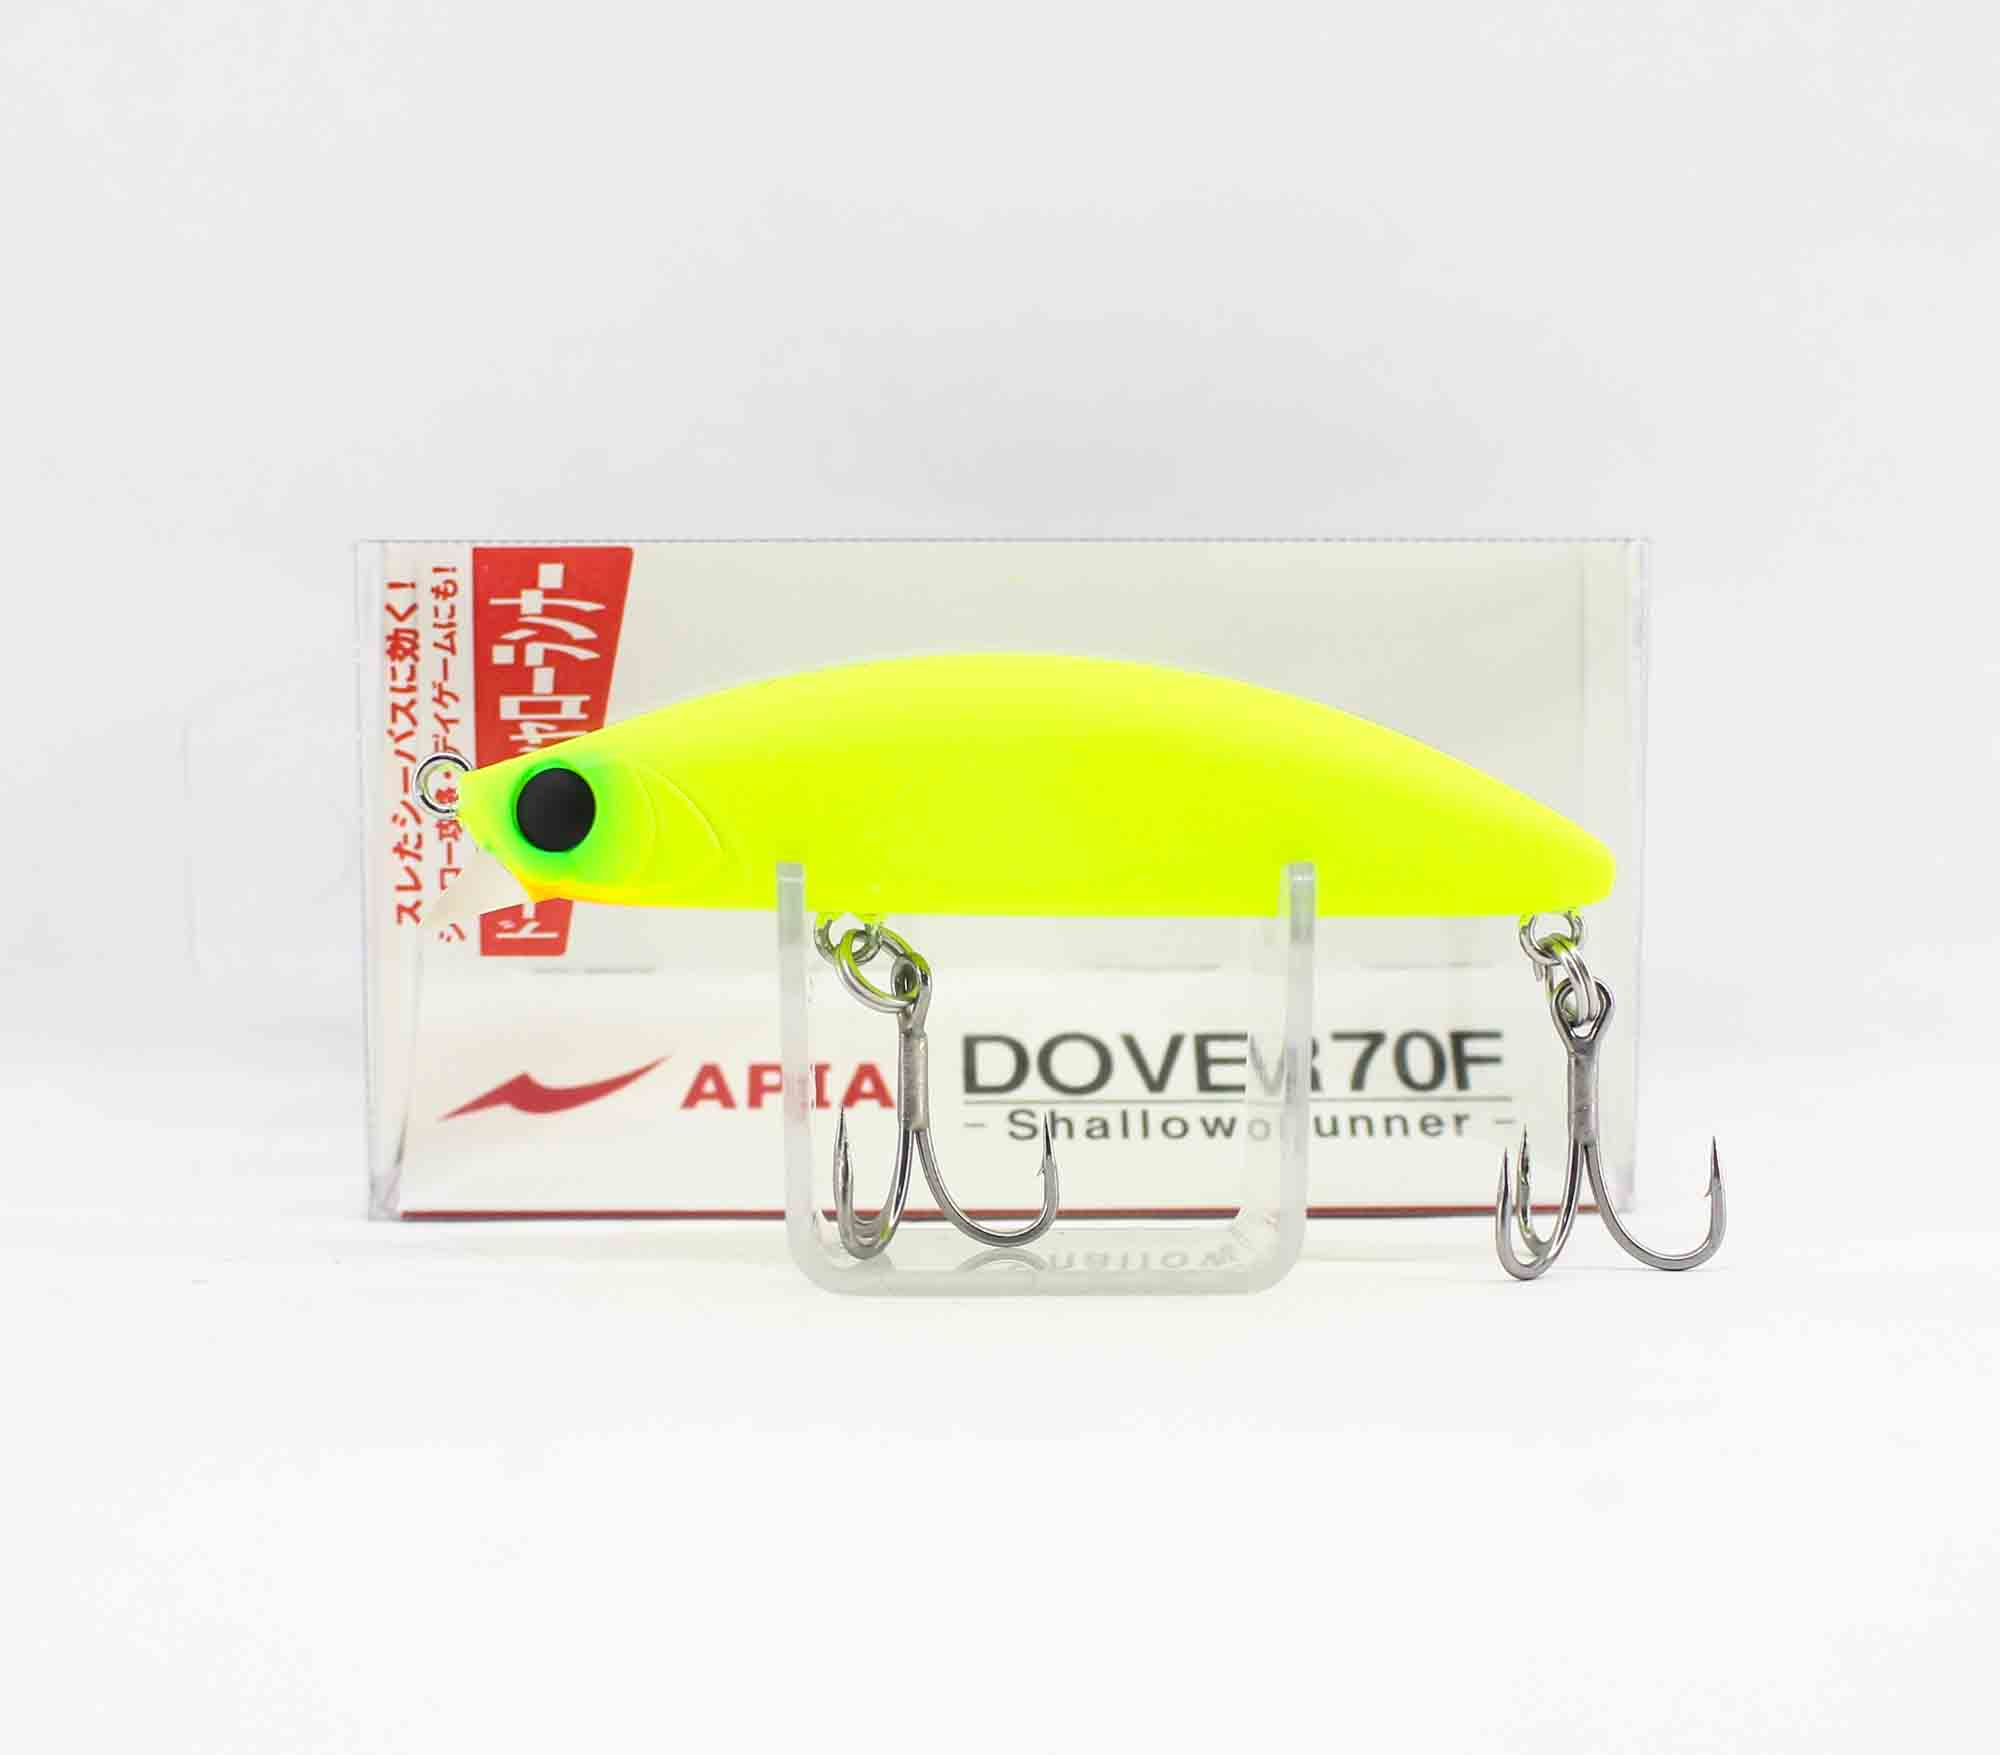 Apia Dover 70 F Floating Lure 10 (8689)